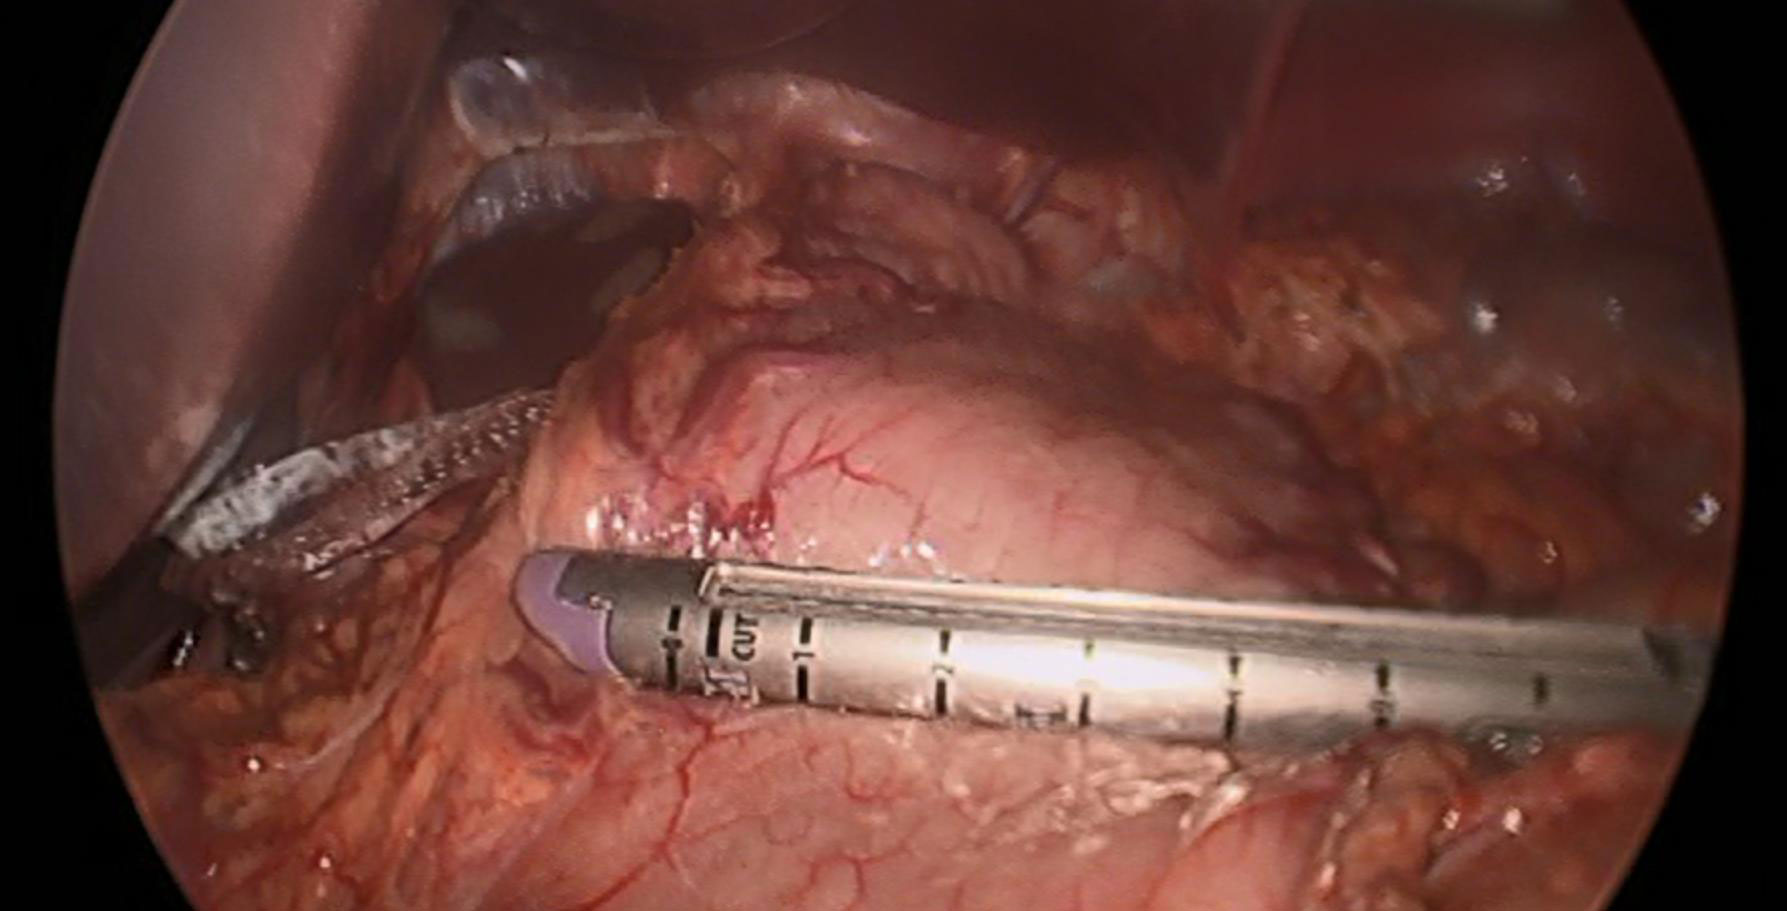 Laparoscopic view of a surgical stapler on the stomach